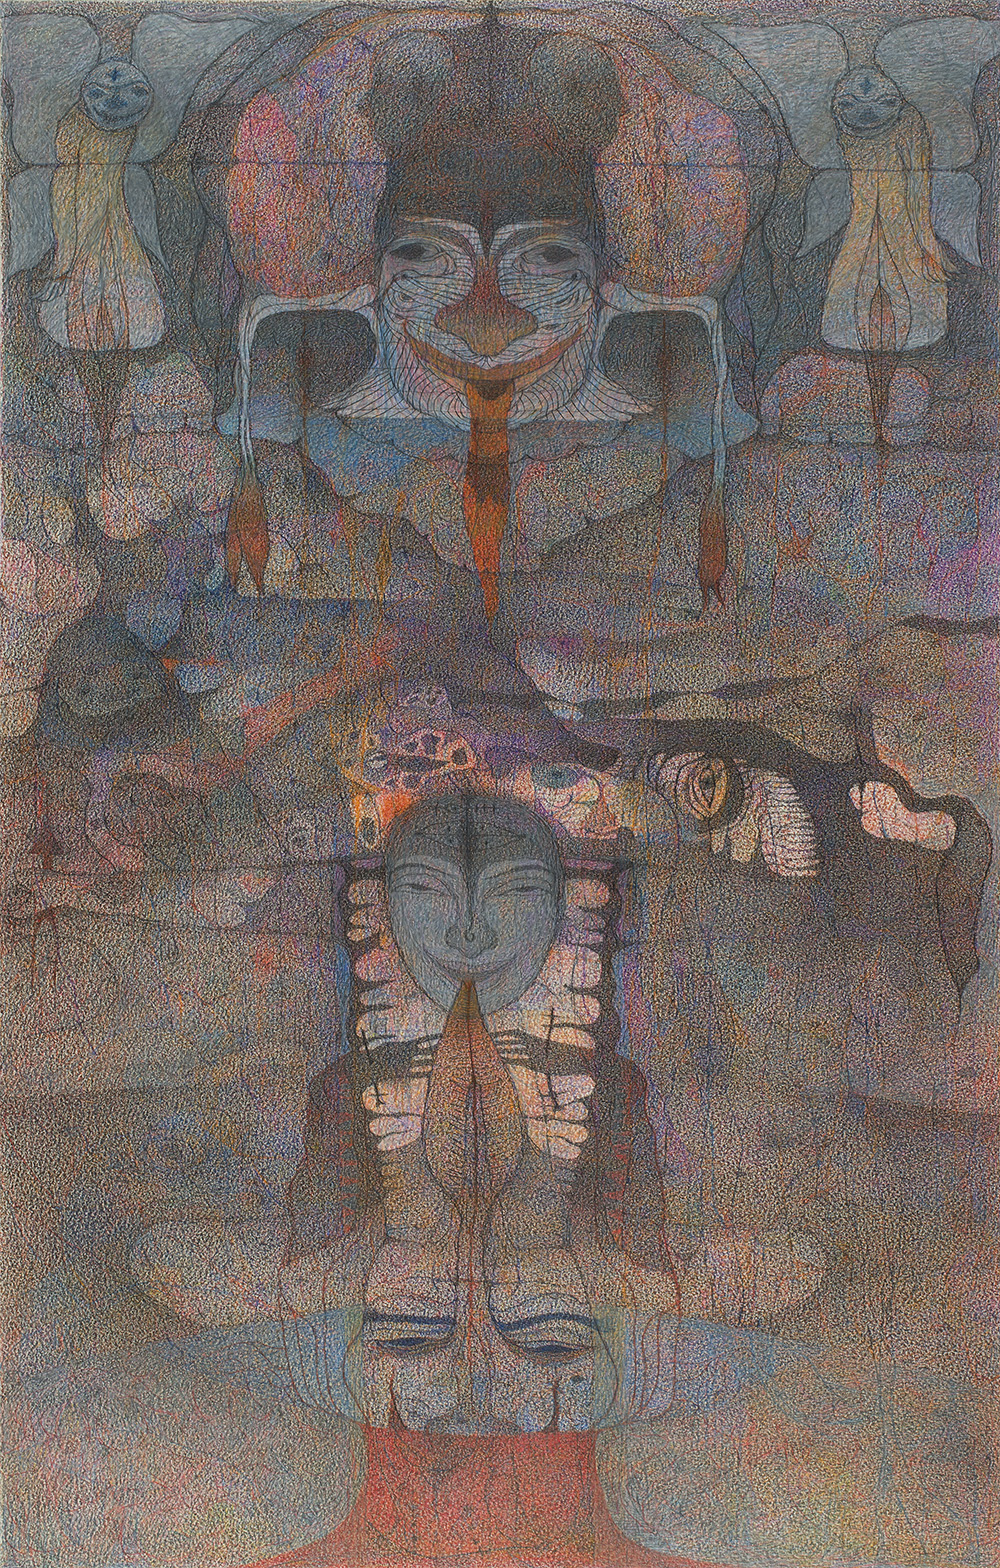 M'onma, Untitled, 2004, Color pencil on paper, 27.56 x 17.6 inches, 70 x 44.7 cm, IMo 63